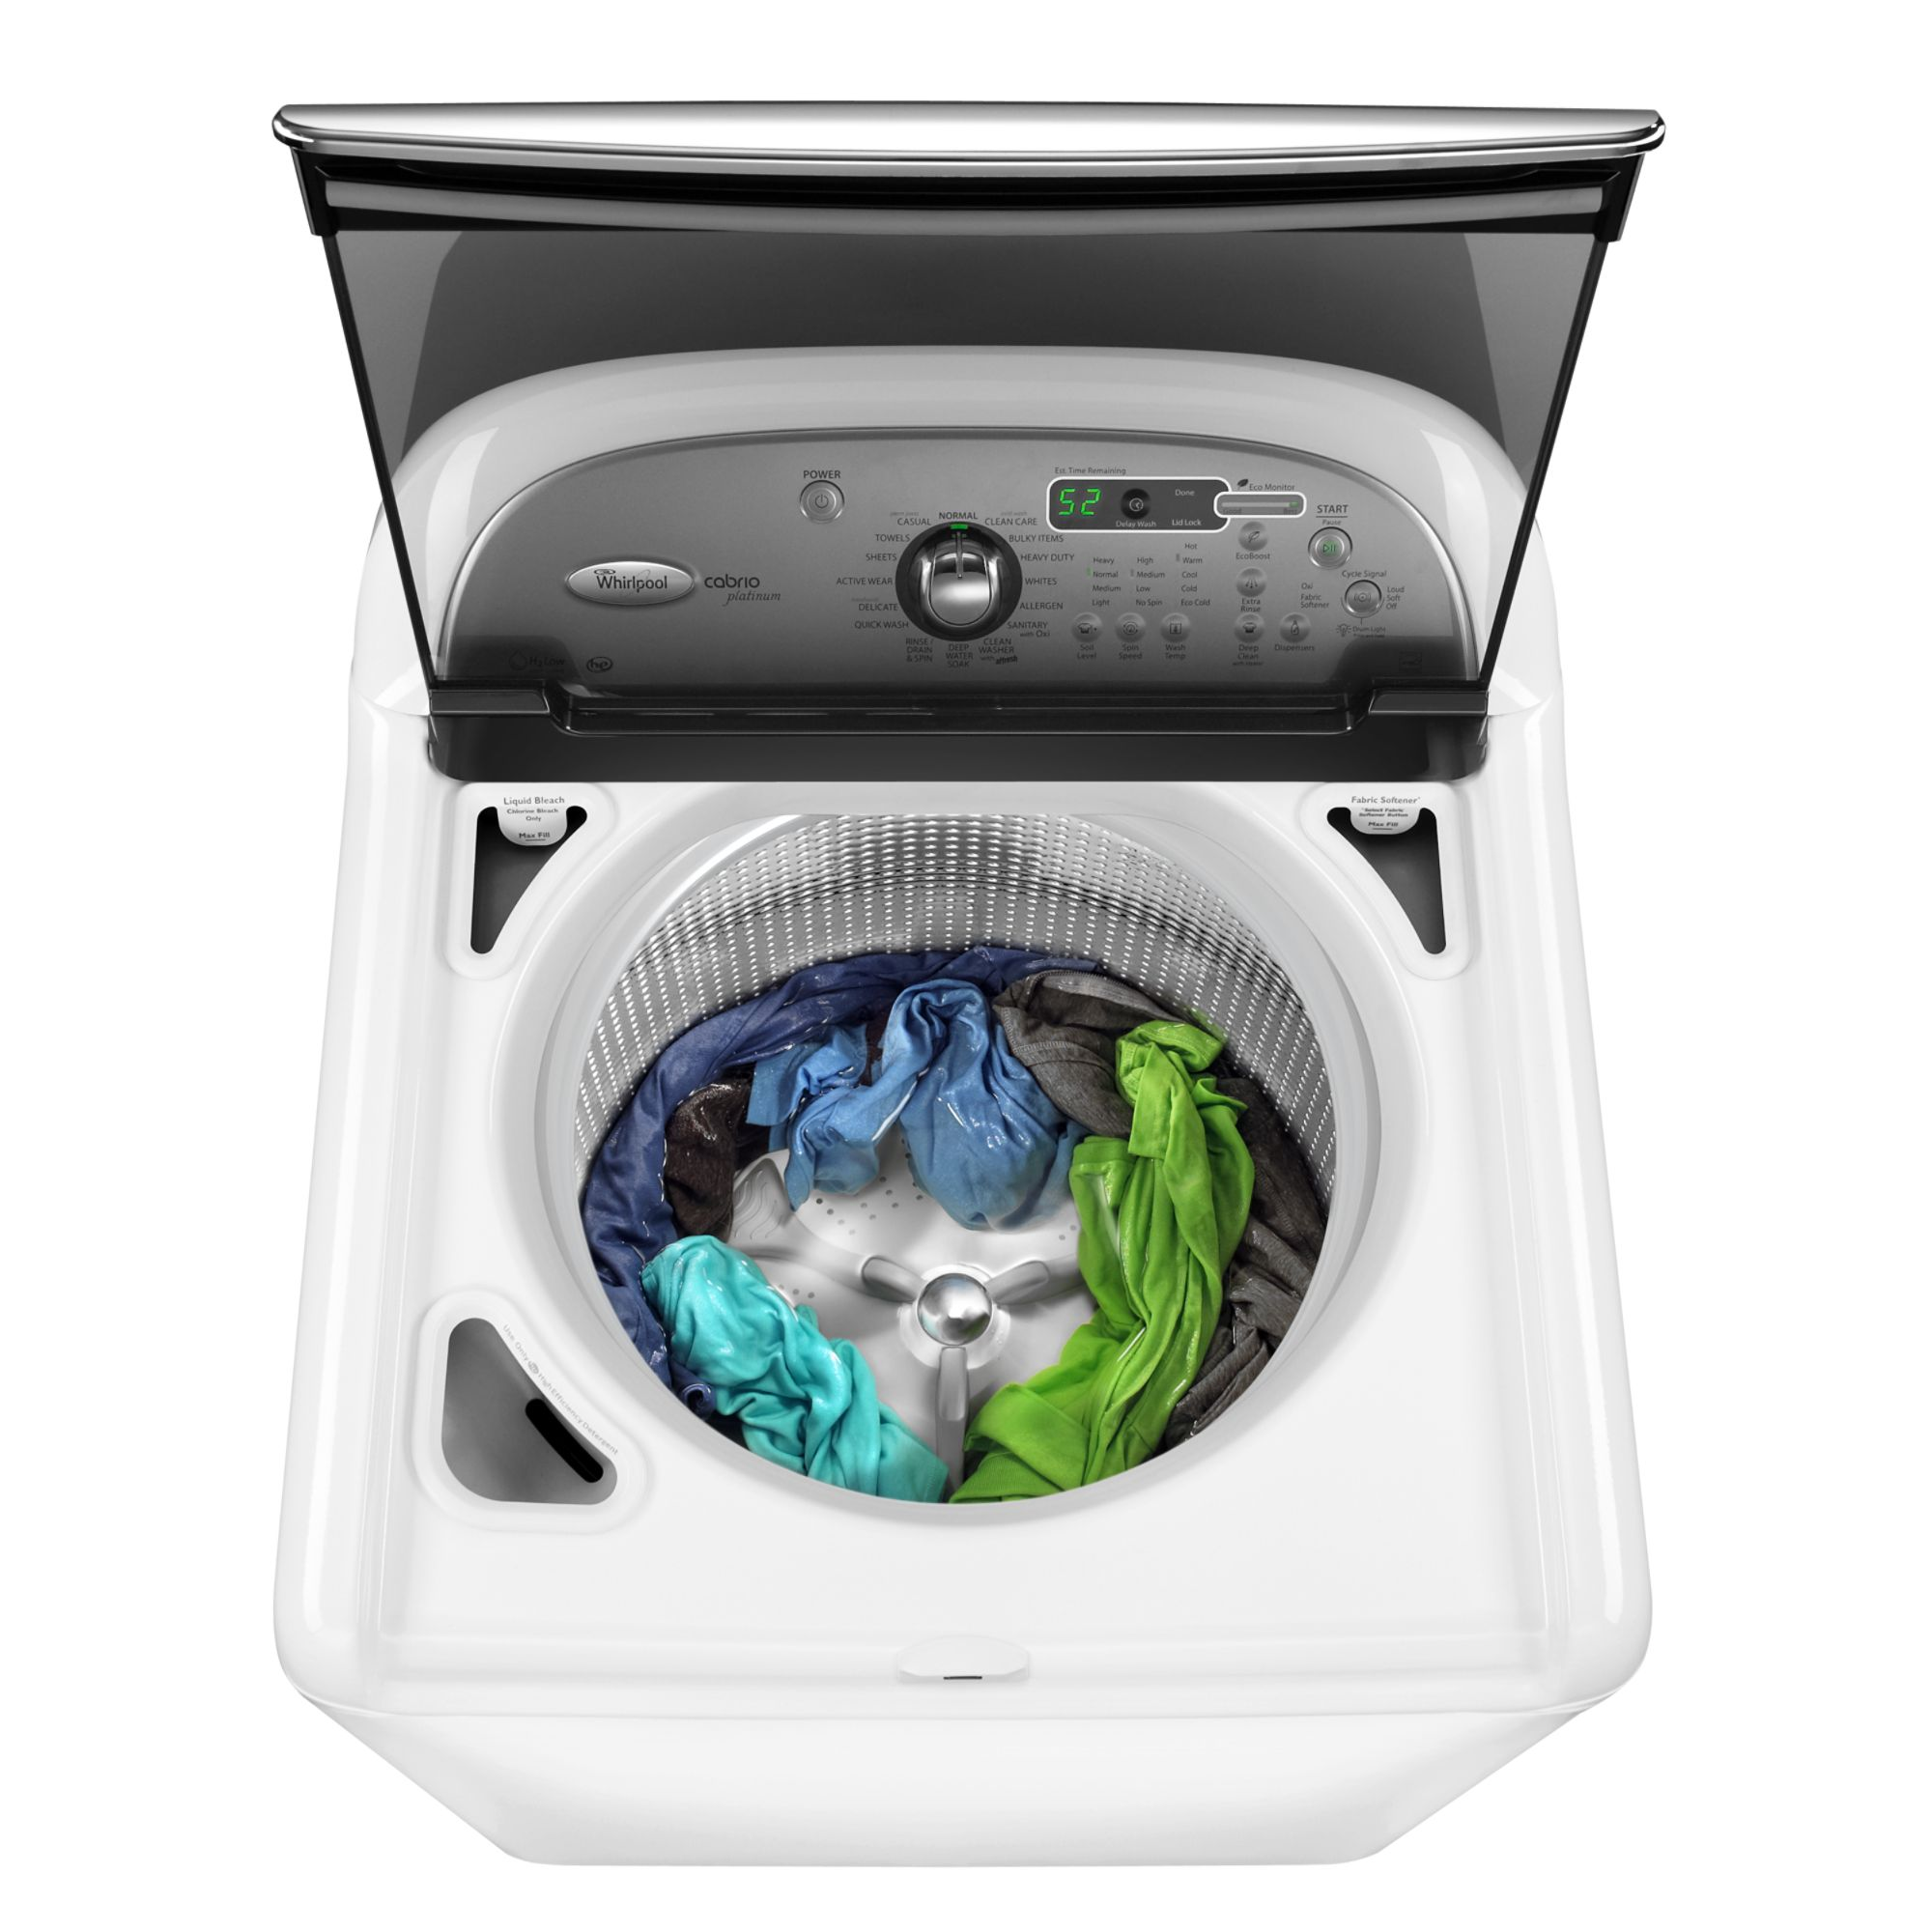 Whirlpool 4.6 cubic foot Top-Load High-Efficiency Washing Machine